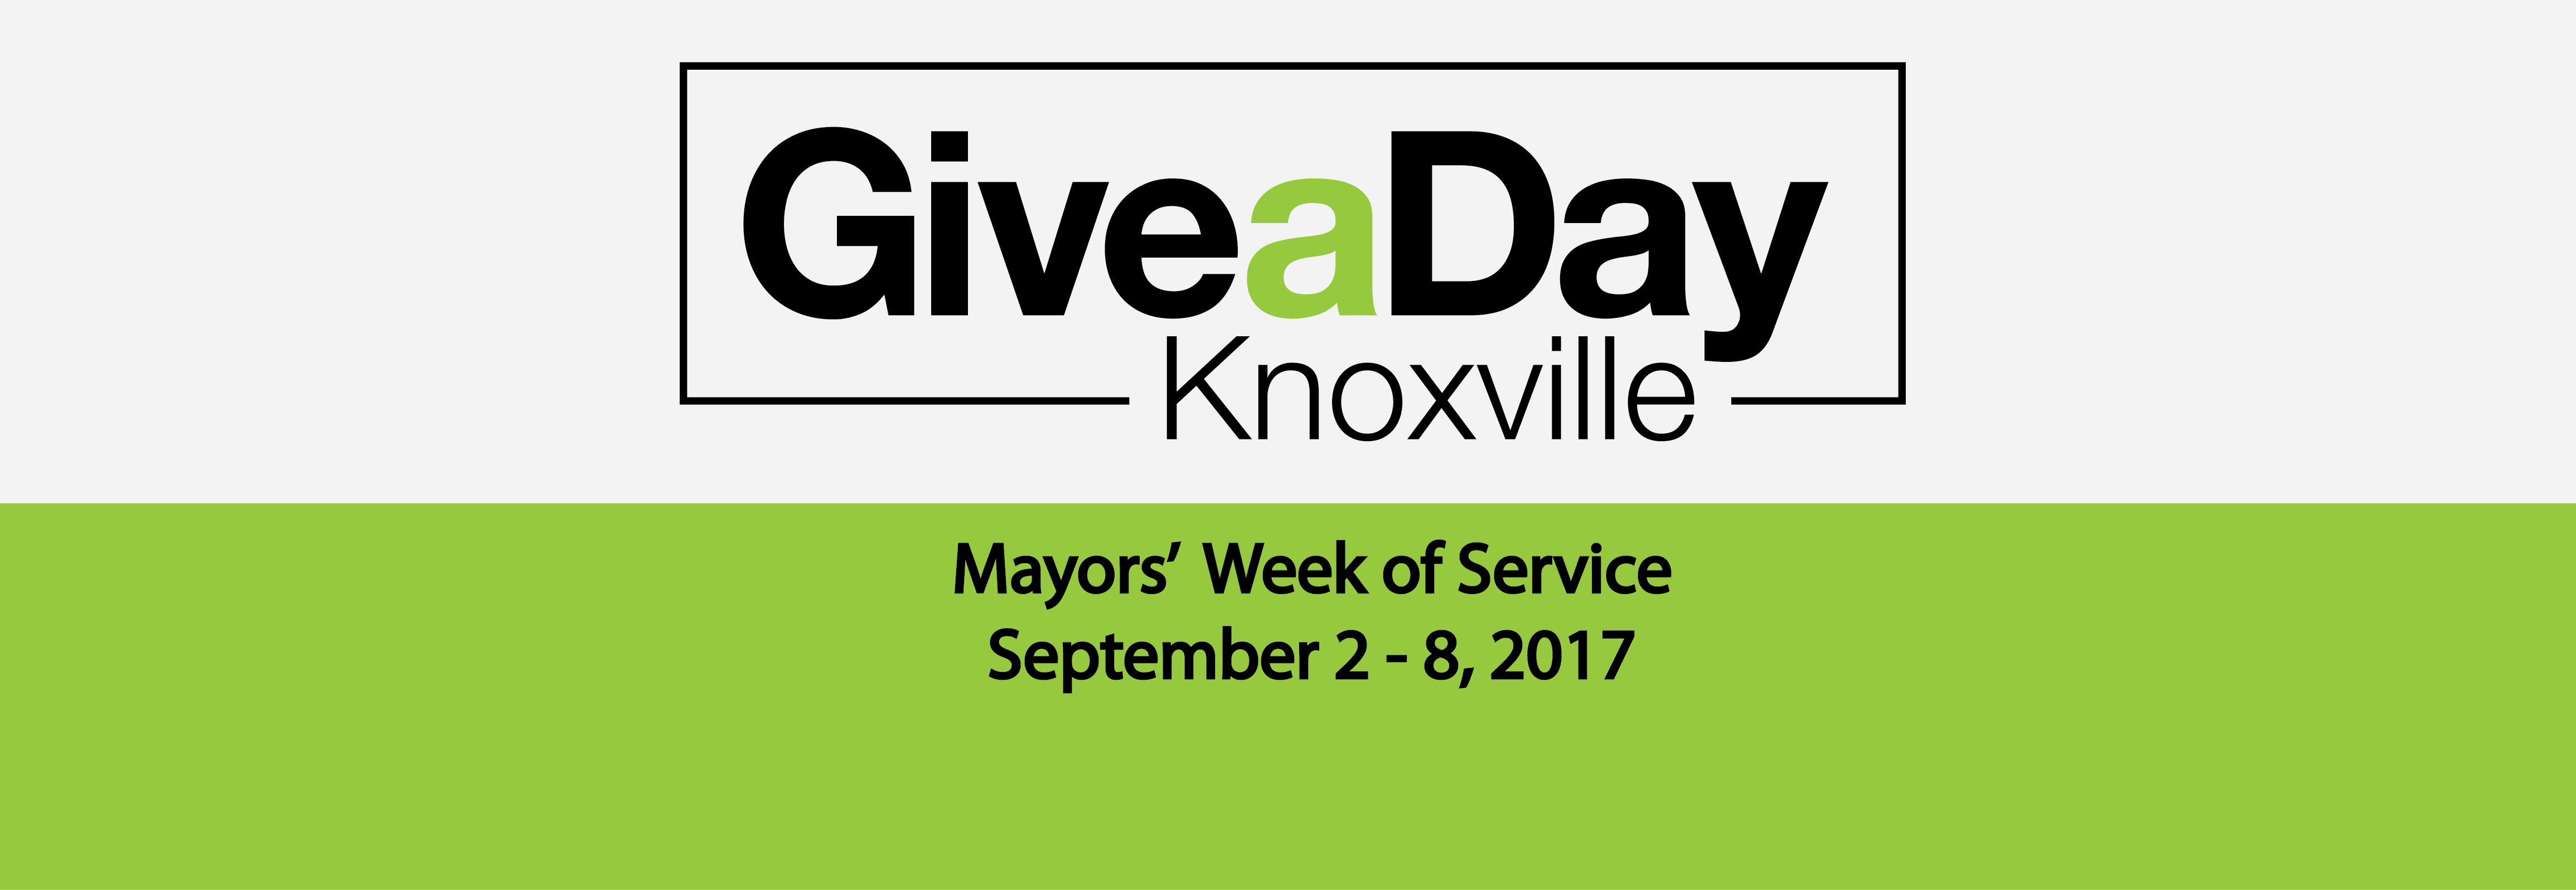 Give A Day Knoxville